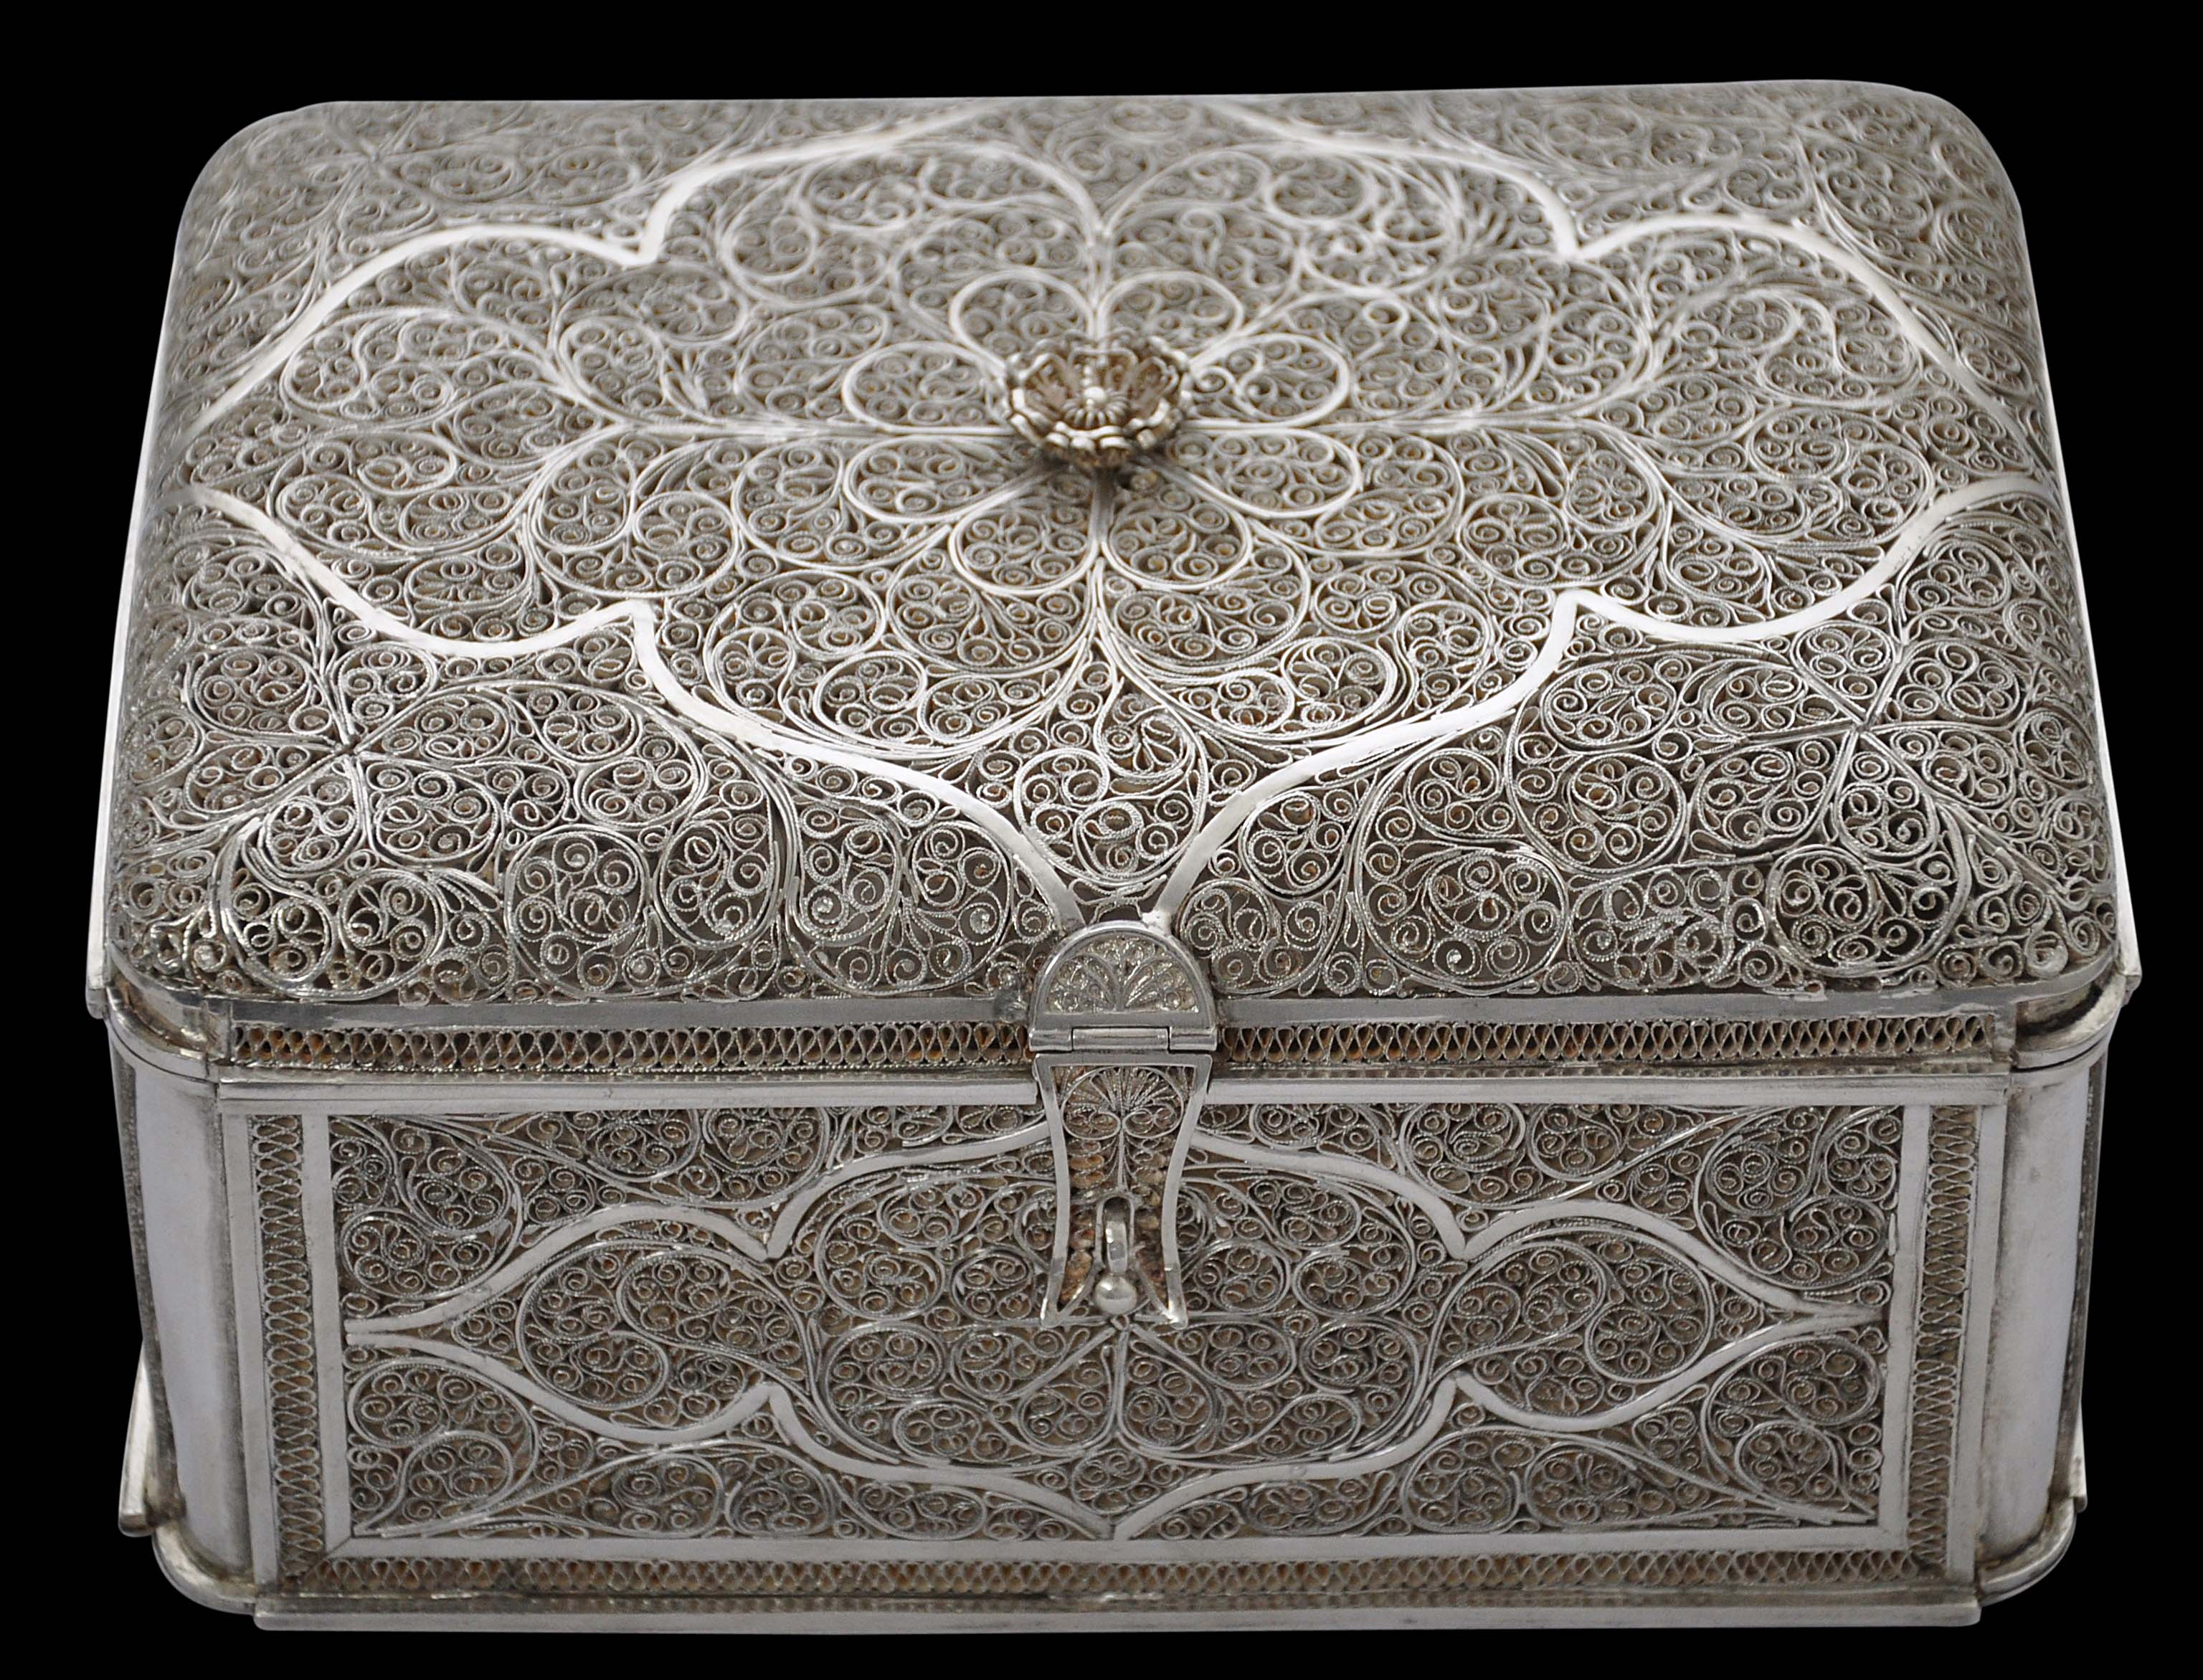 Jewellery Box Adelaide Queen Adelaide S Colonial Silver Filigree Jewellery Box Michael